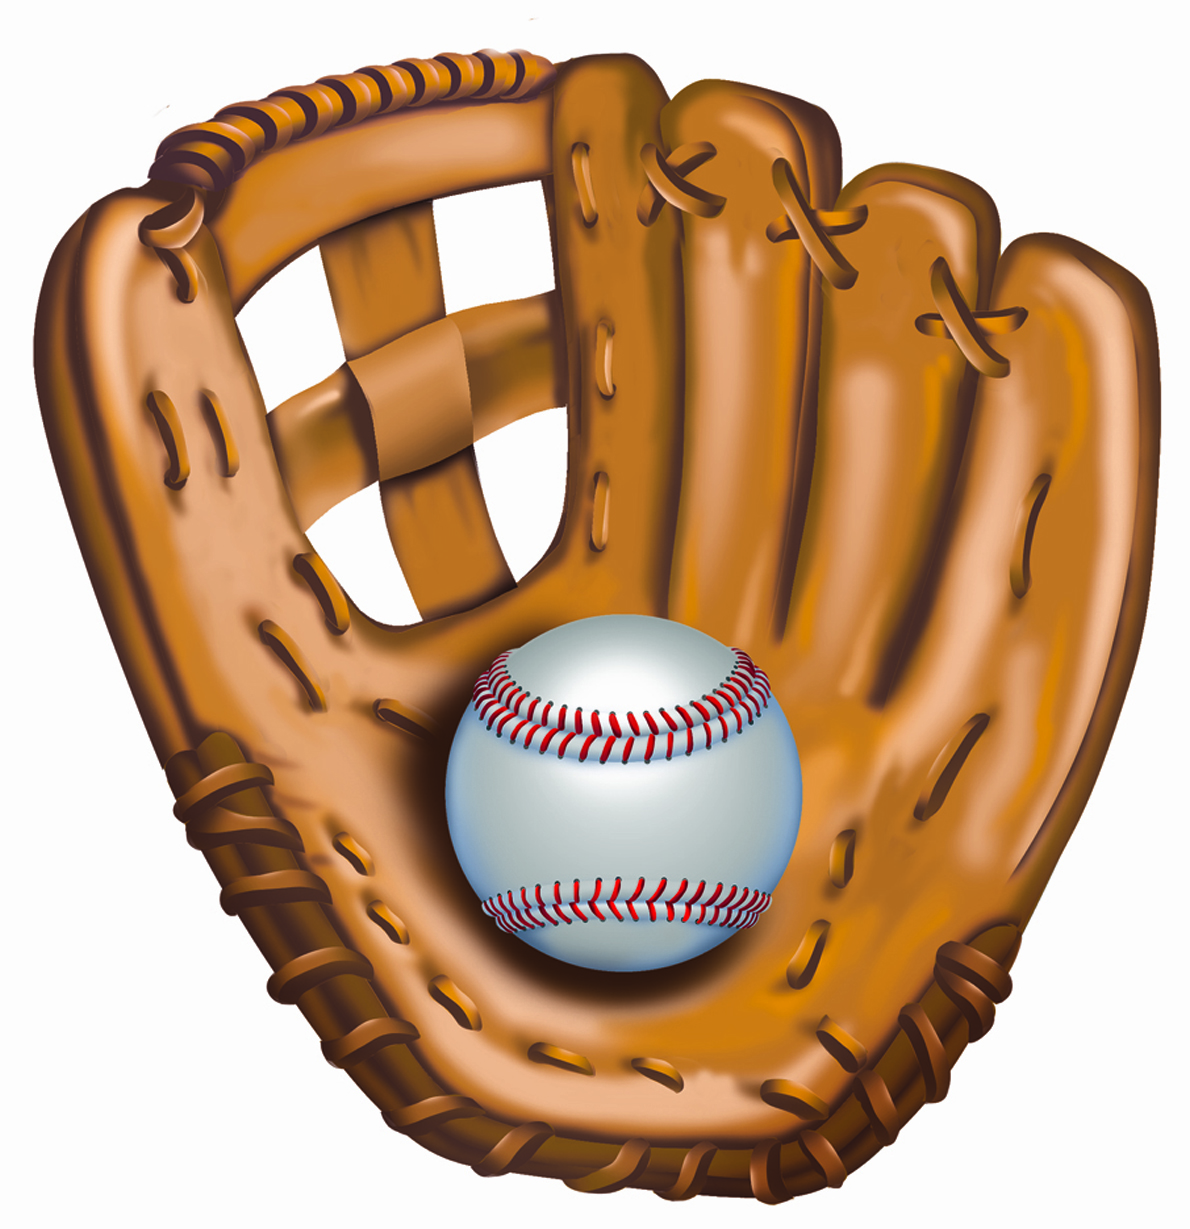 Arm in softball glove clipart clip art transparent library Free Baseball Glove Cliparts, Download Free Clip Art, Free Clip Art ... clip art transparent library